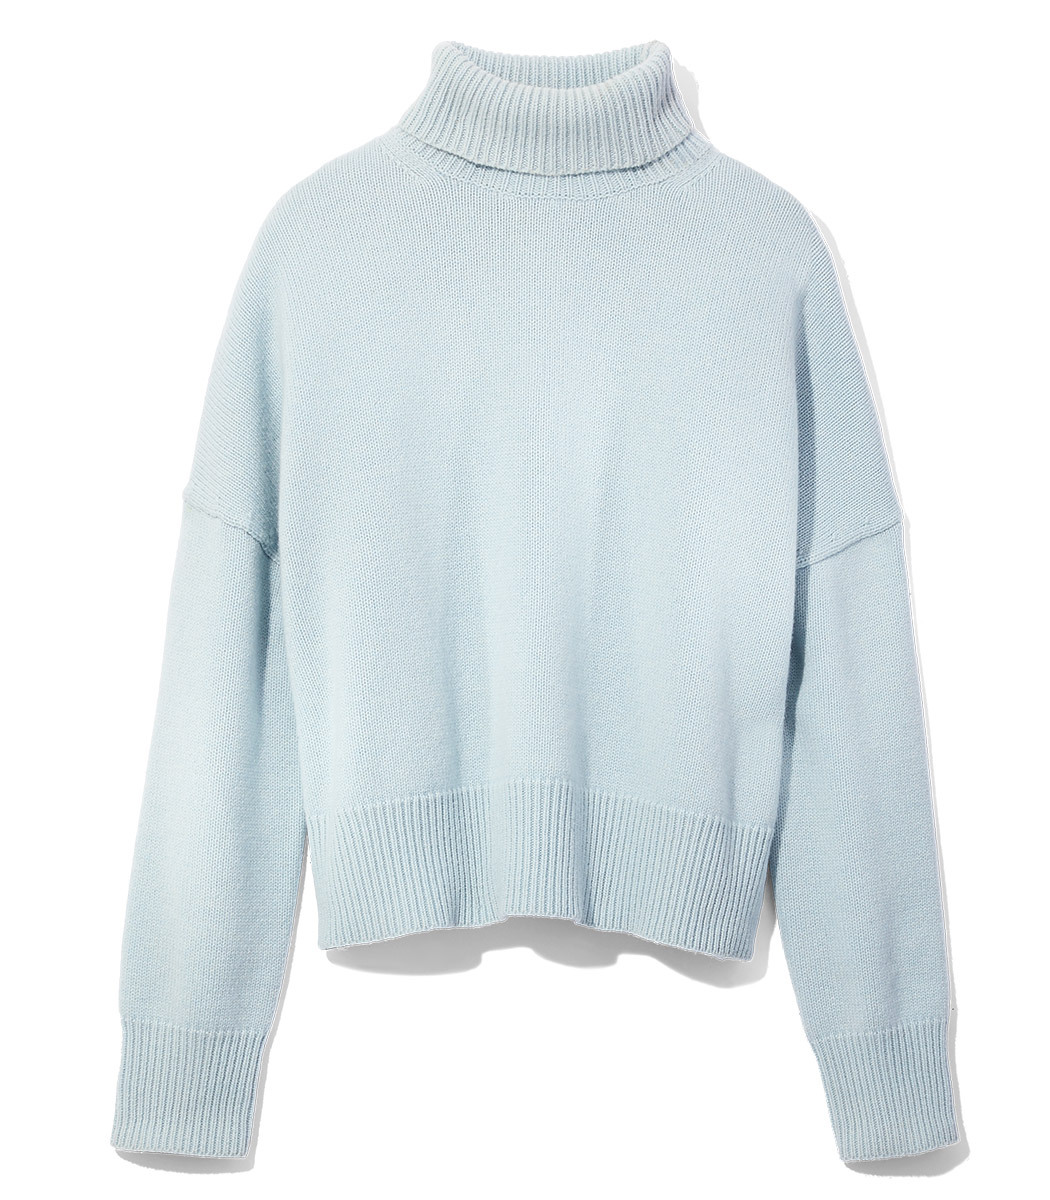 Nili Lotan Light Blue Turtleneck Sweater - Light Blue Turtleneck ...